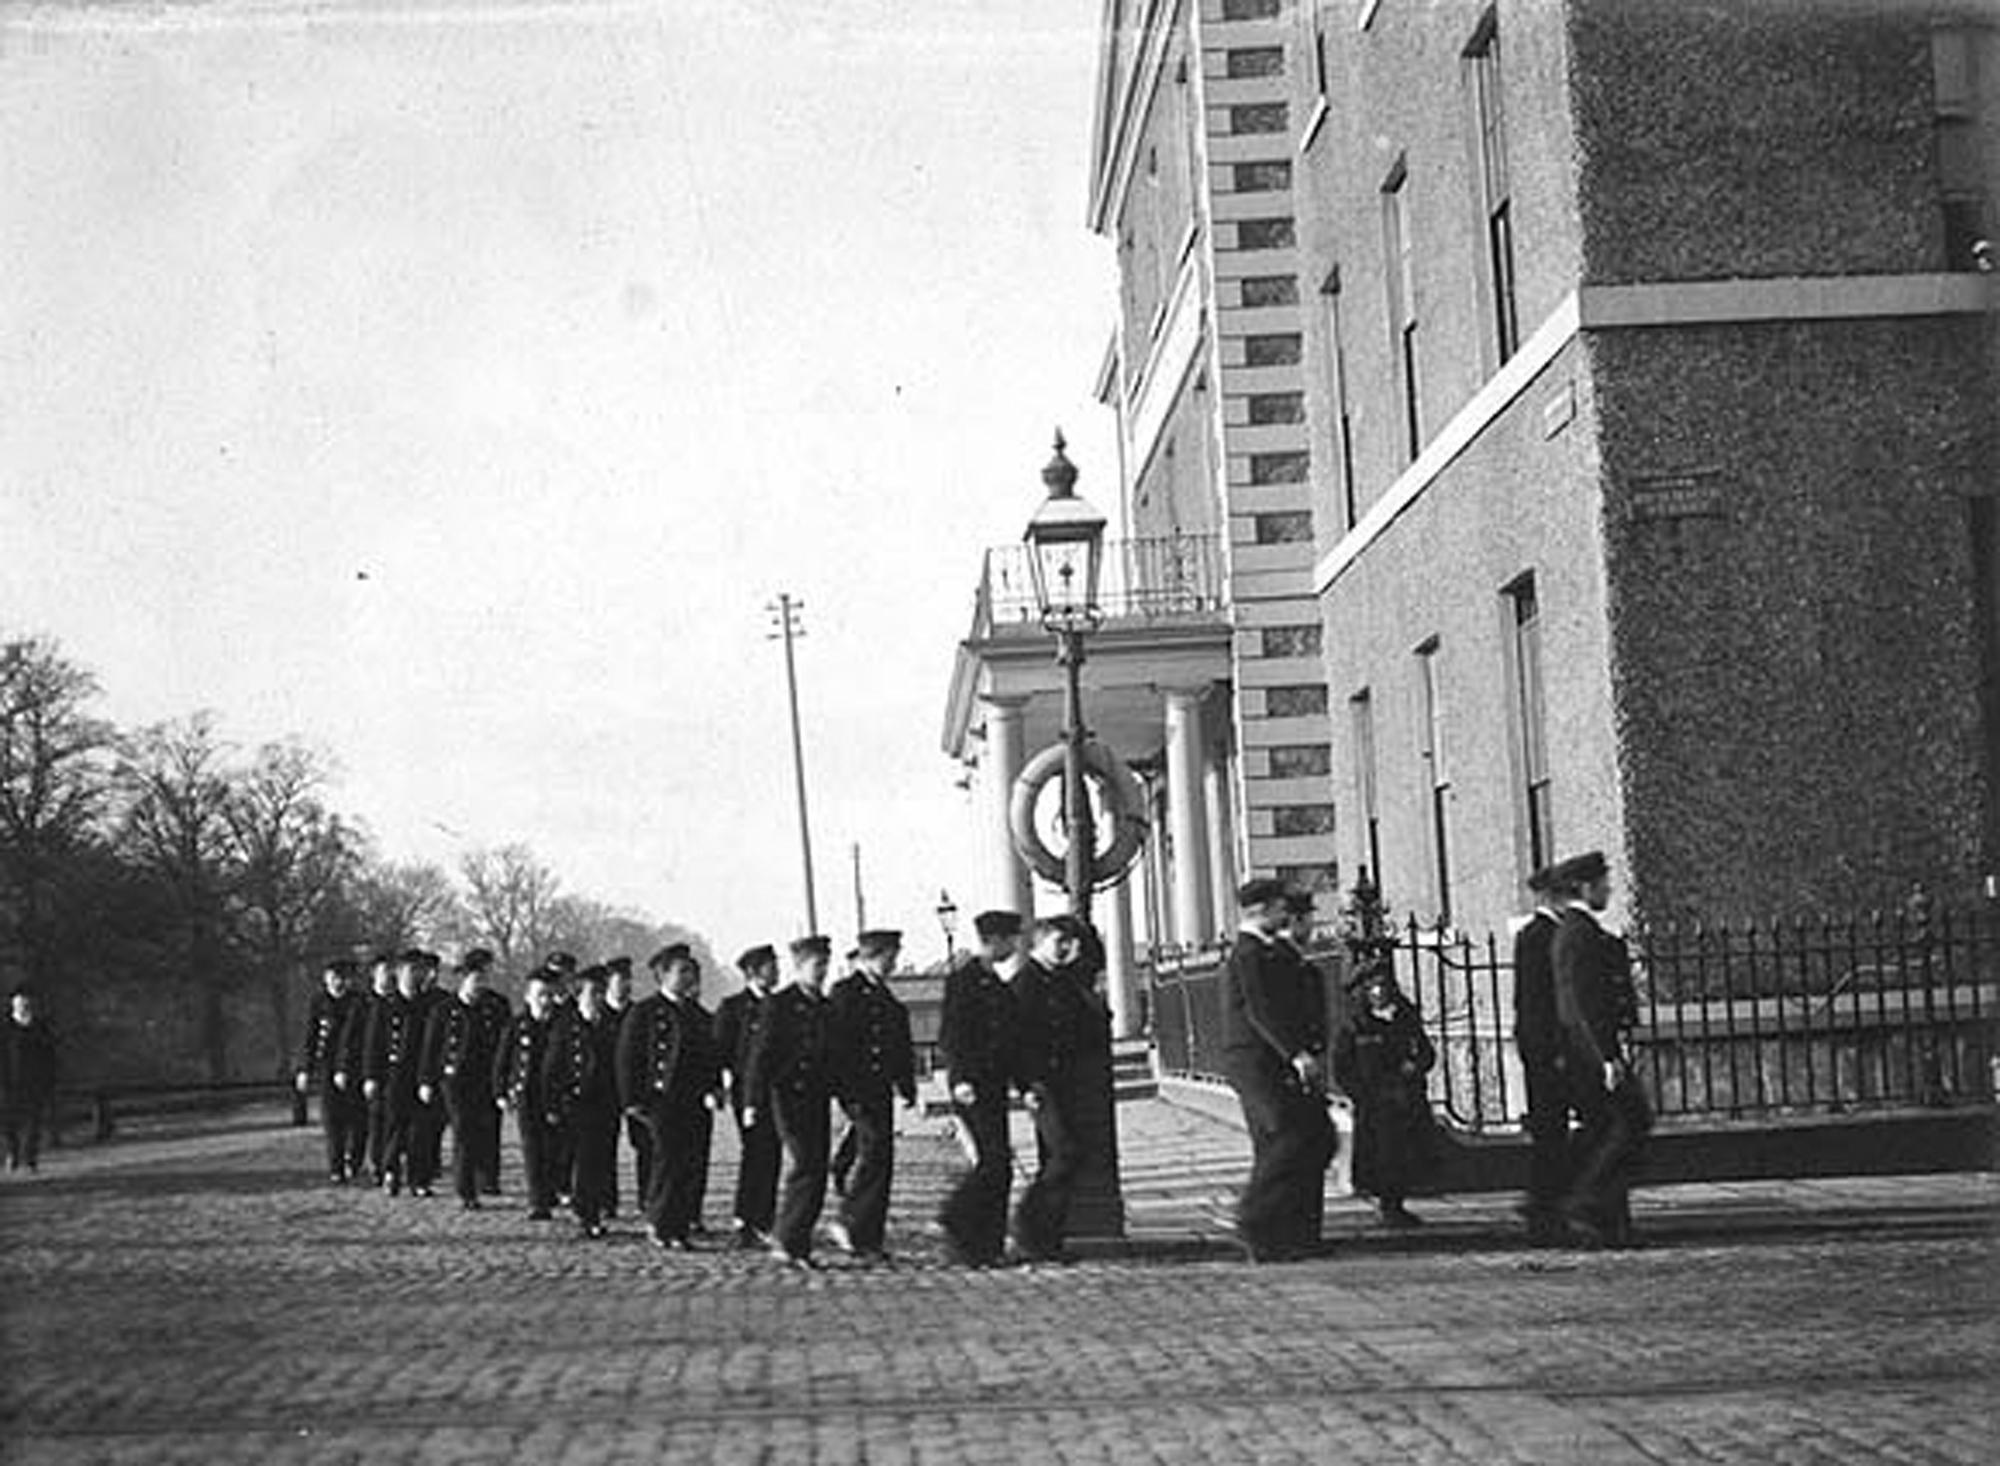 Group of boys in uniform marching at the corner of Portobello and Richmond Street South